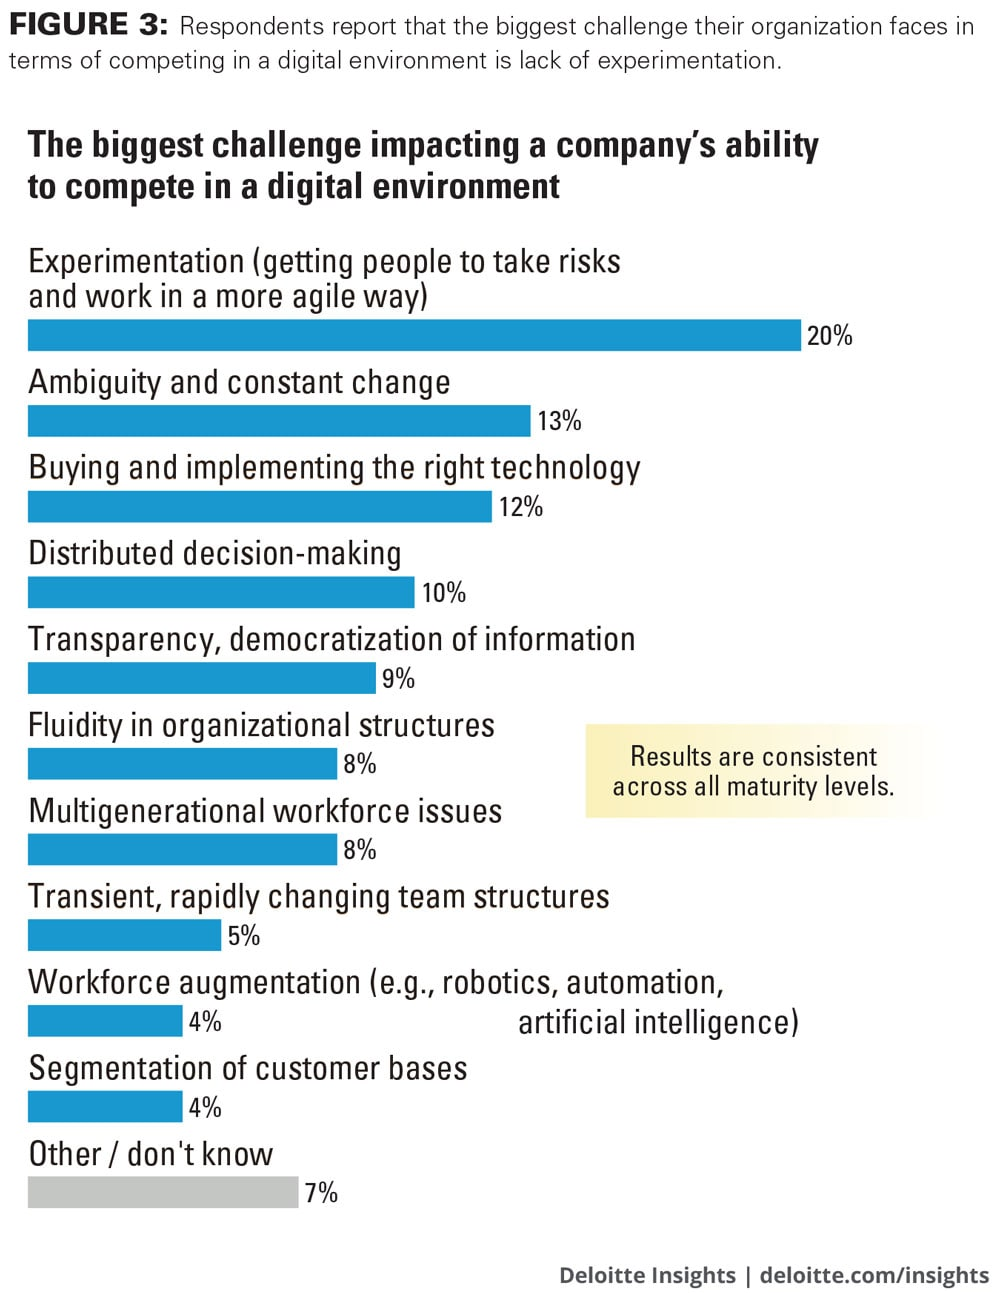 Respondents report that the biggest challenge their organization faces in terms of competing in a digital environment is lack of experimentation.